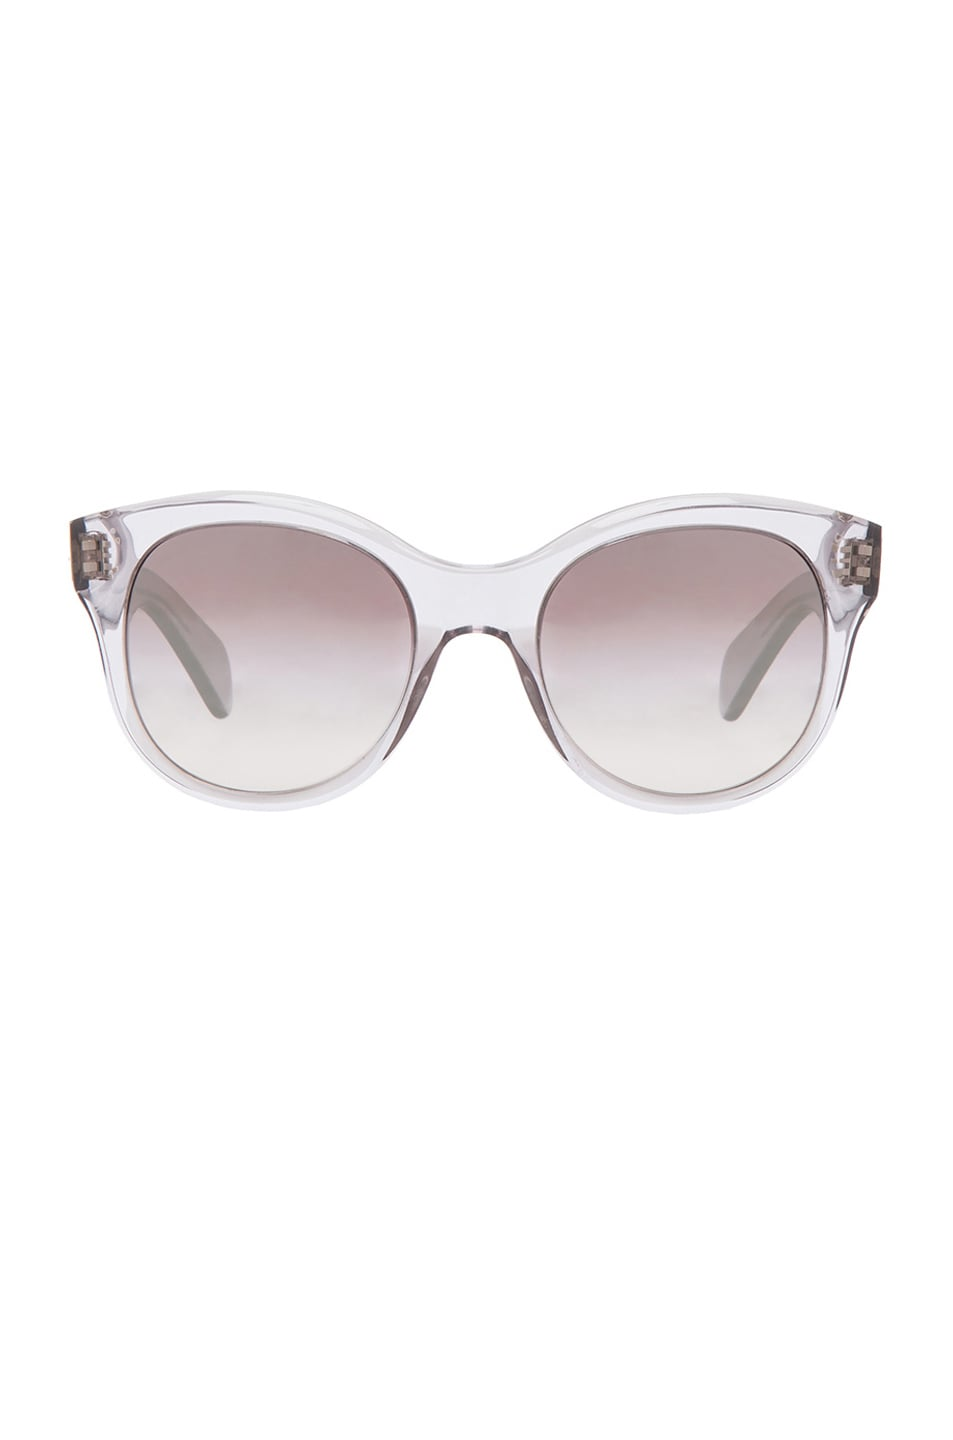 Image 1 of Oliver Peoples Jacey Sunglasses in Workman Grey & Silver Mirror